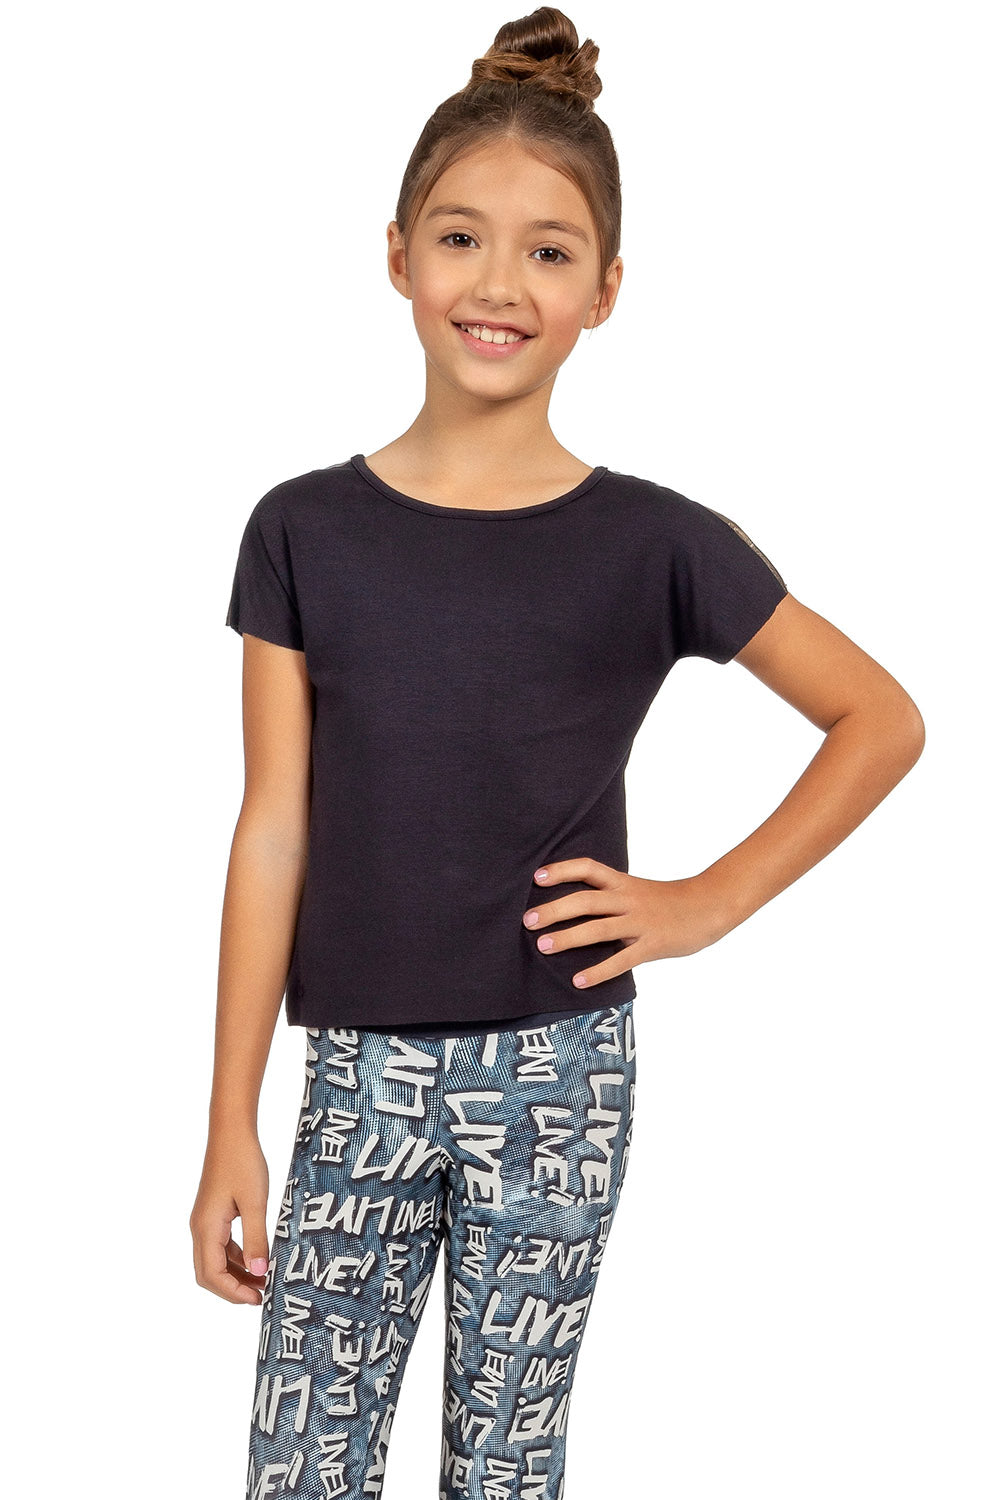 High Energy Kids Blouse 1